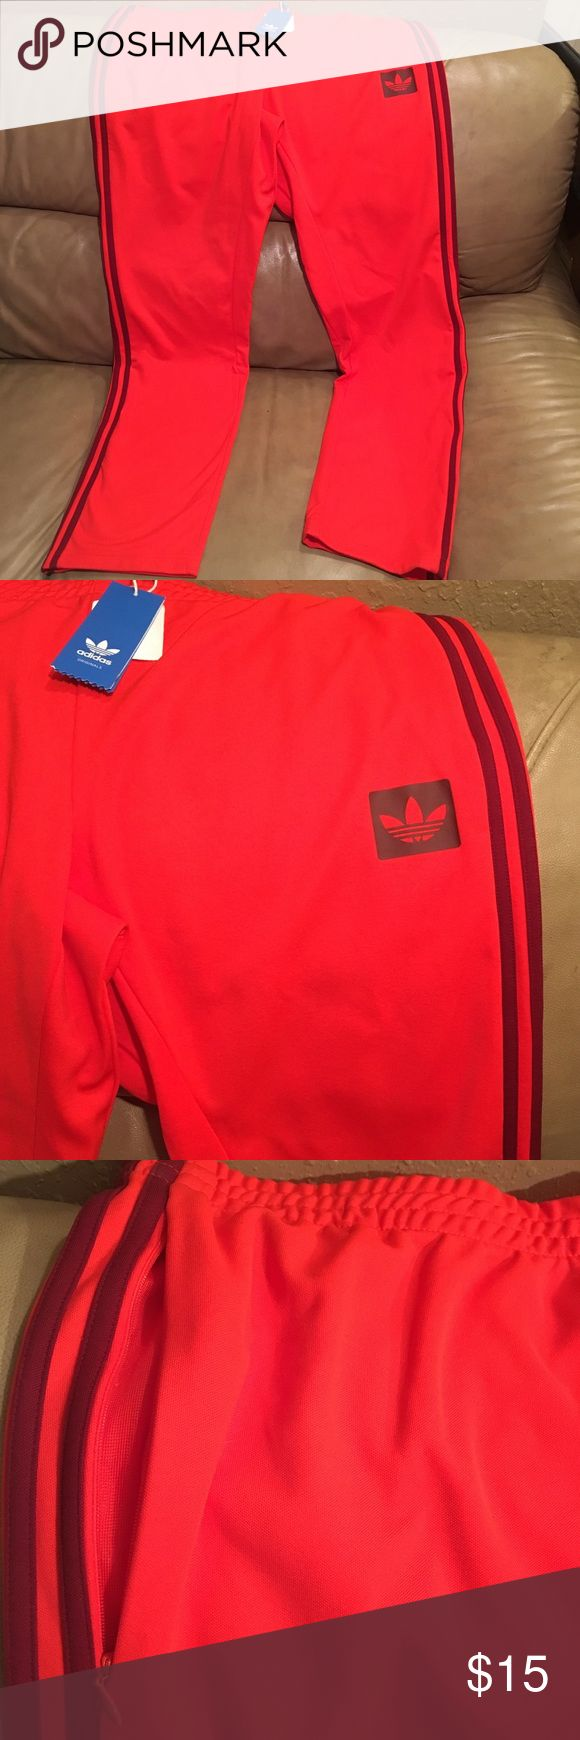 MENS ADIDAS WARM UP PANTS BRAND NEW These vibrate Adidas pants are great brand new with tags size XL adidas Pants Sweatpants & Joggers